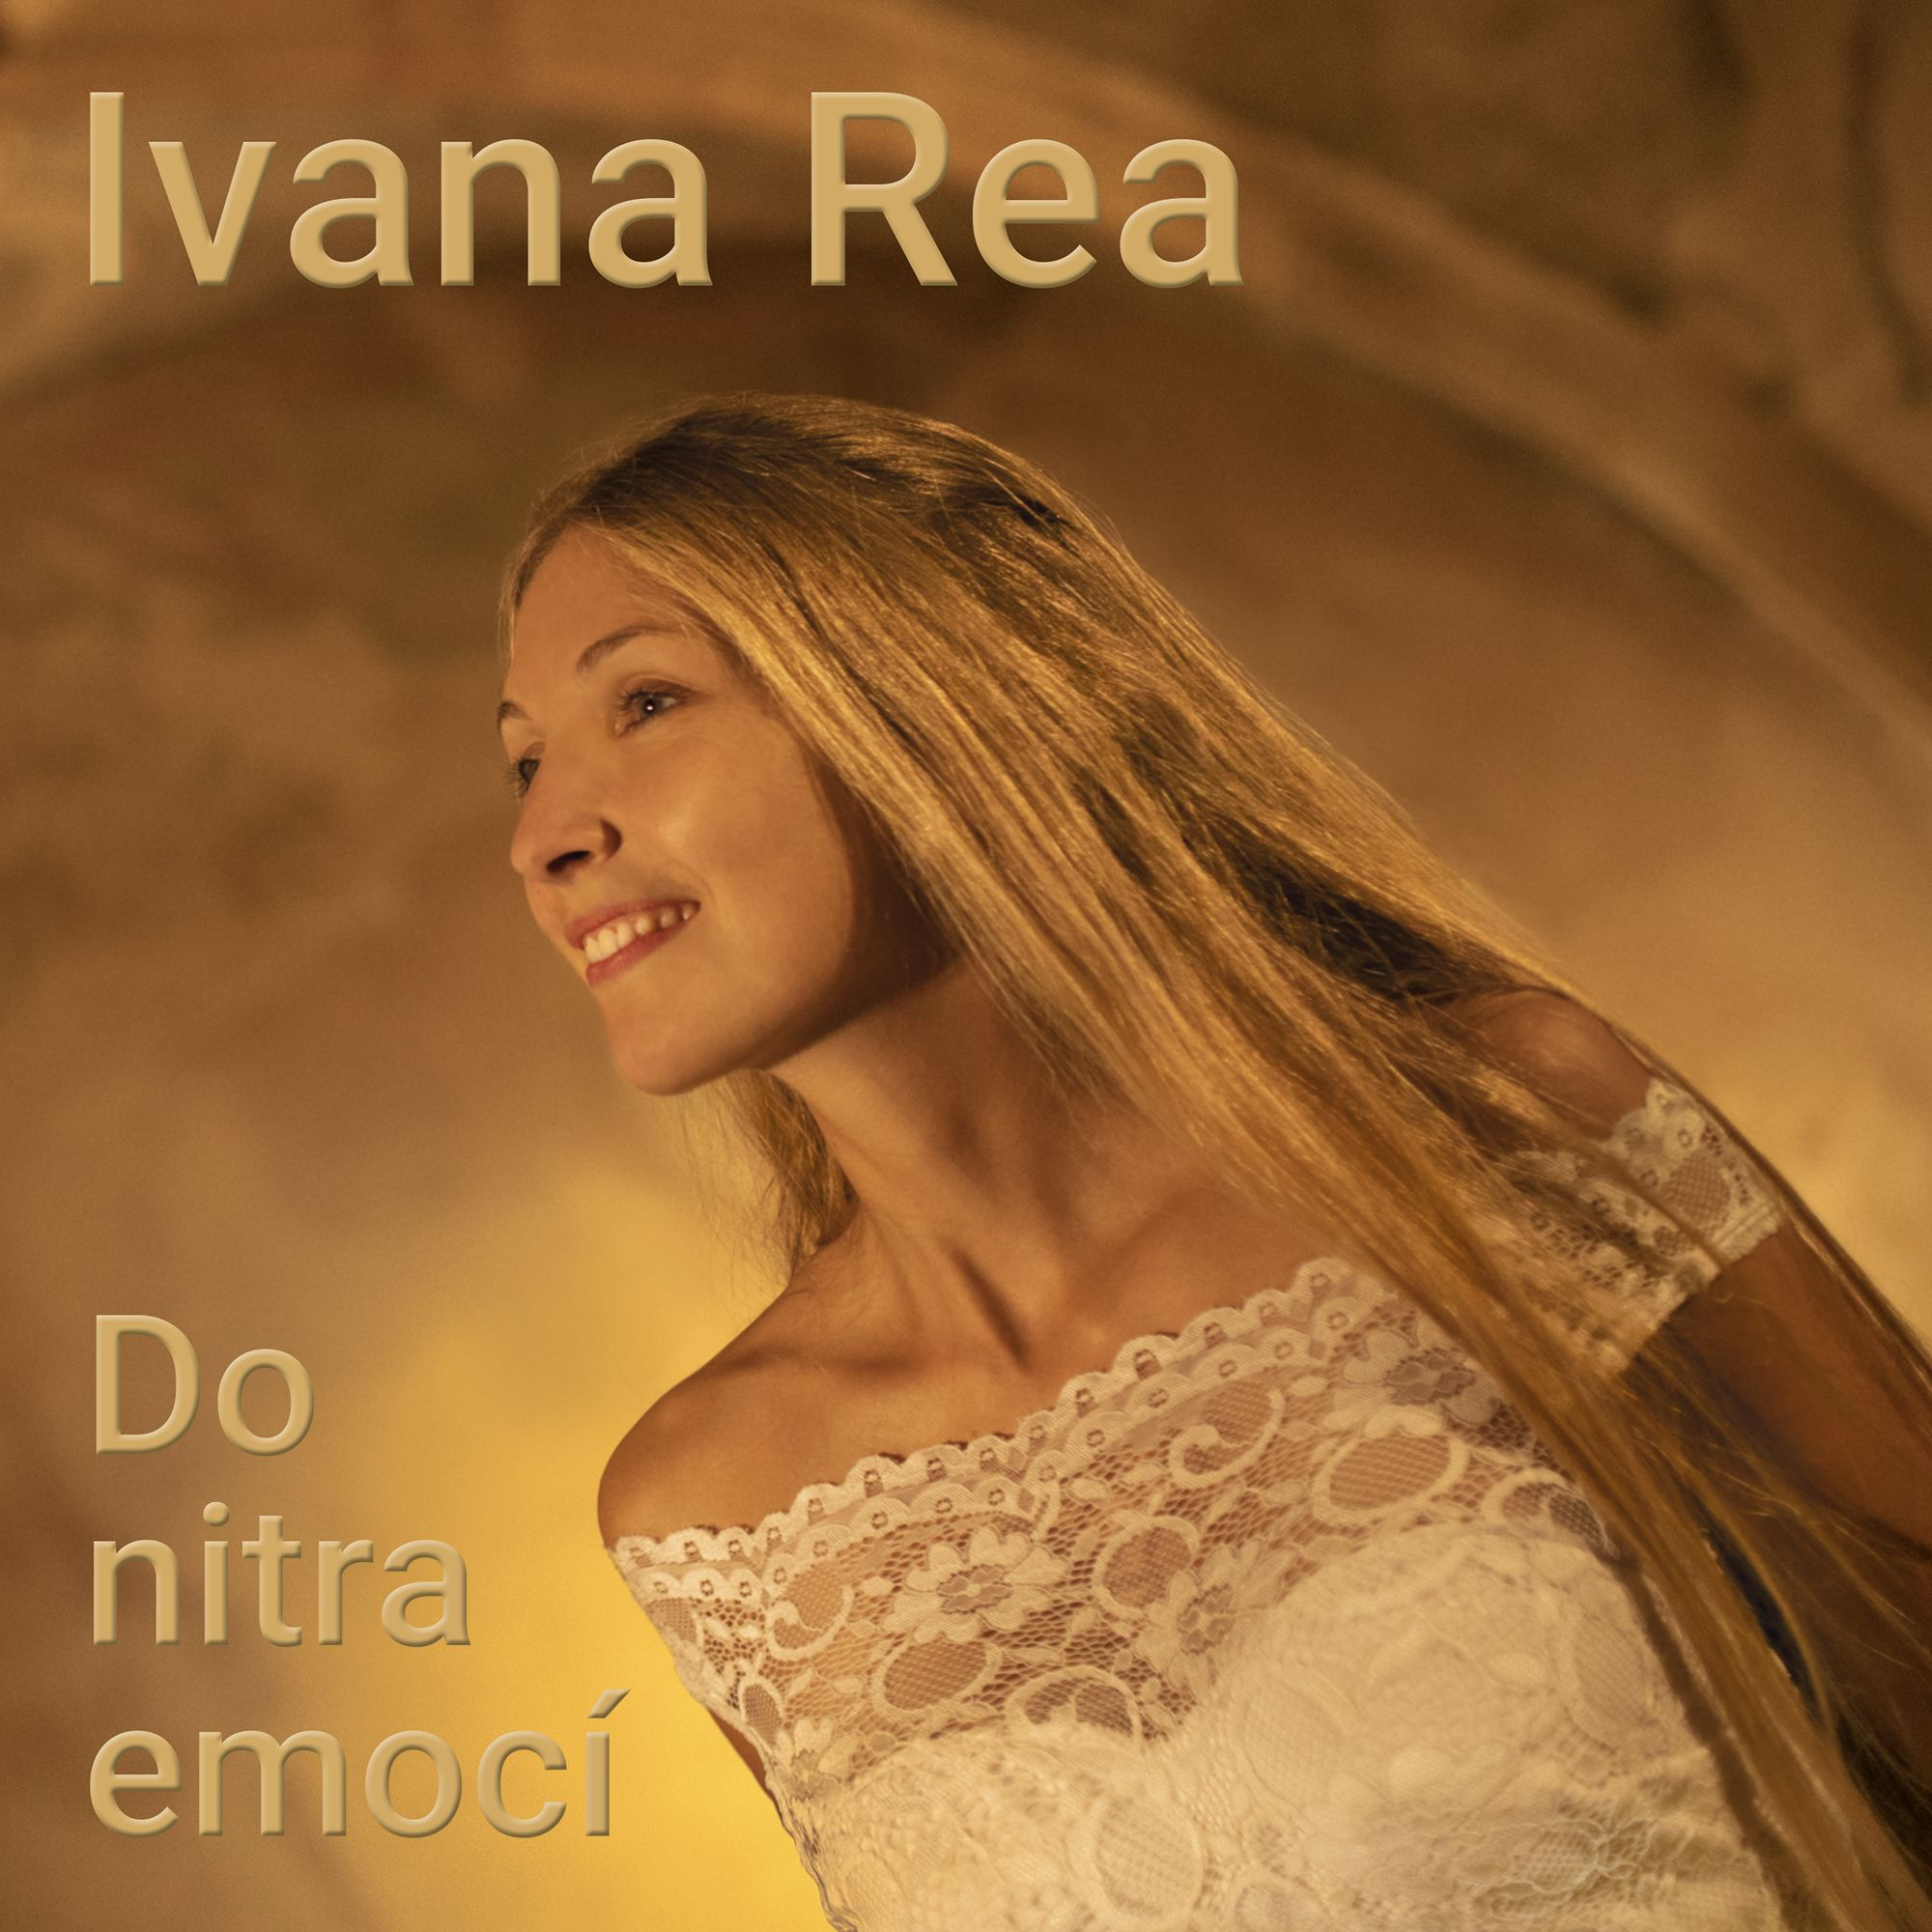 CD - Do nitra emocí